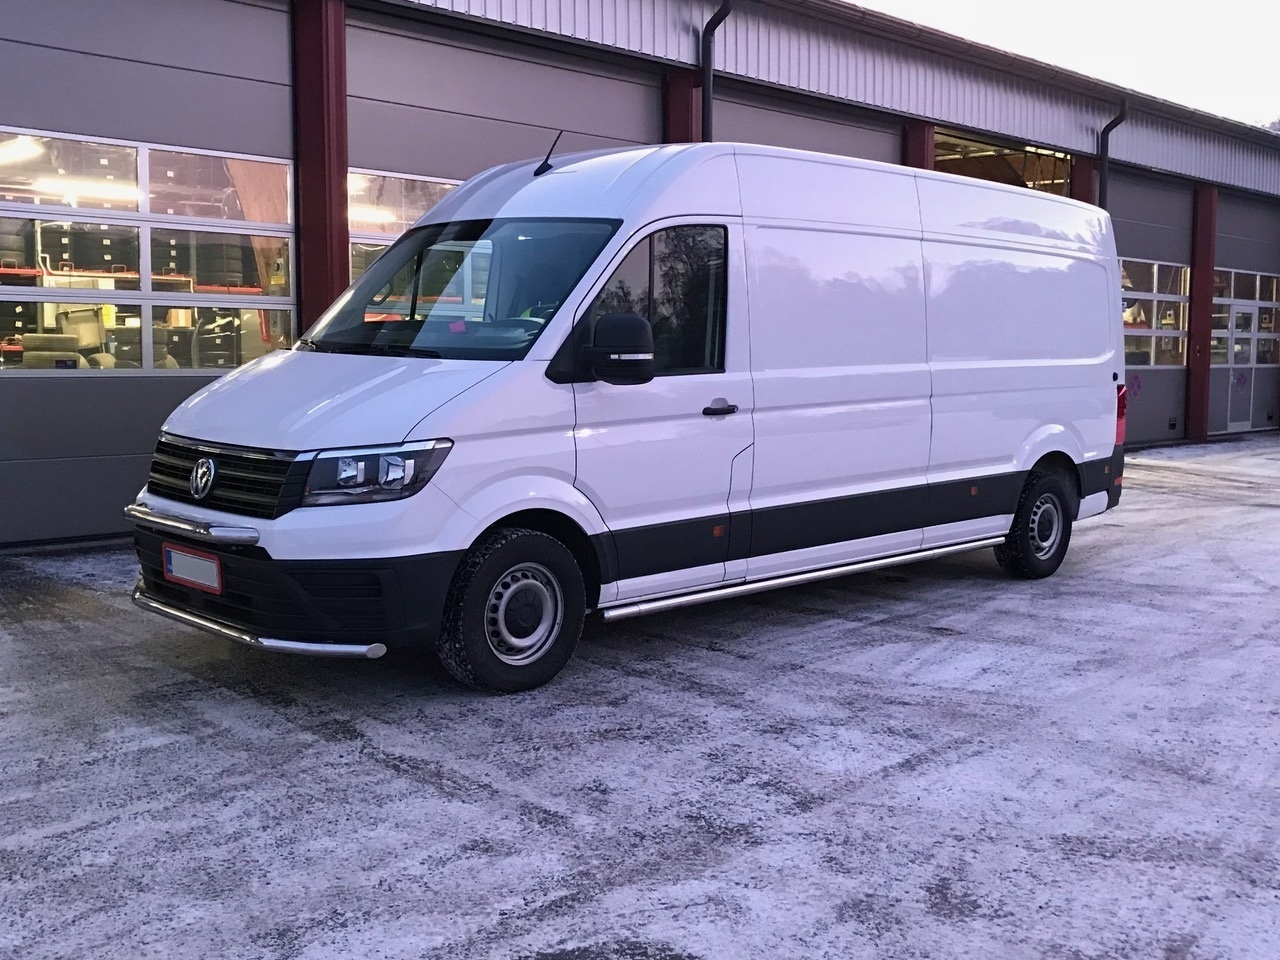 Pick Up Hyundai 2017 >> VW Crafter 2017-> Small Light bar -New Crafter Light bar